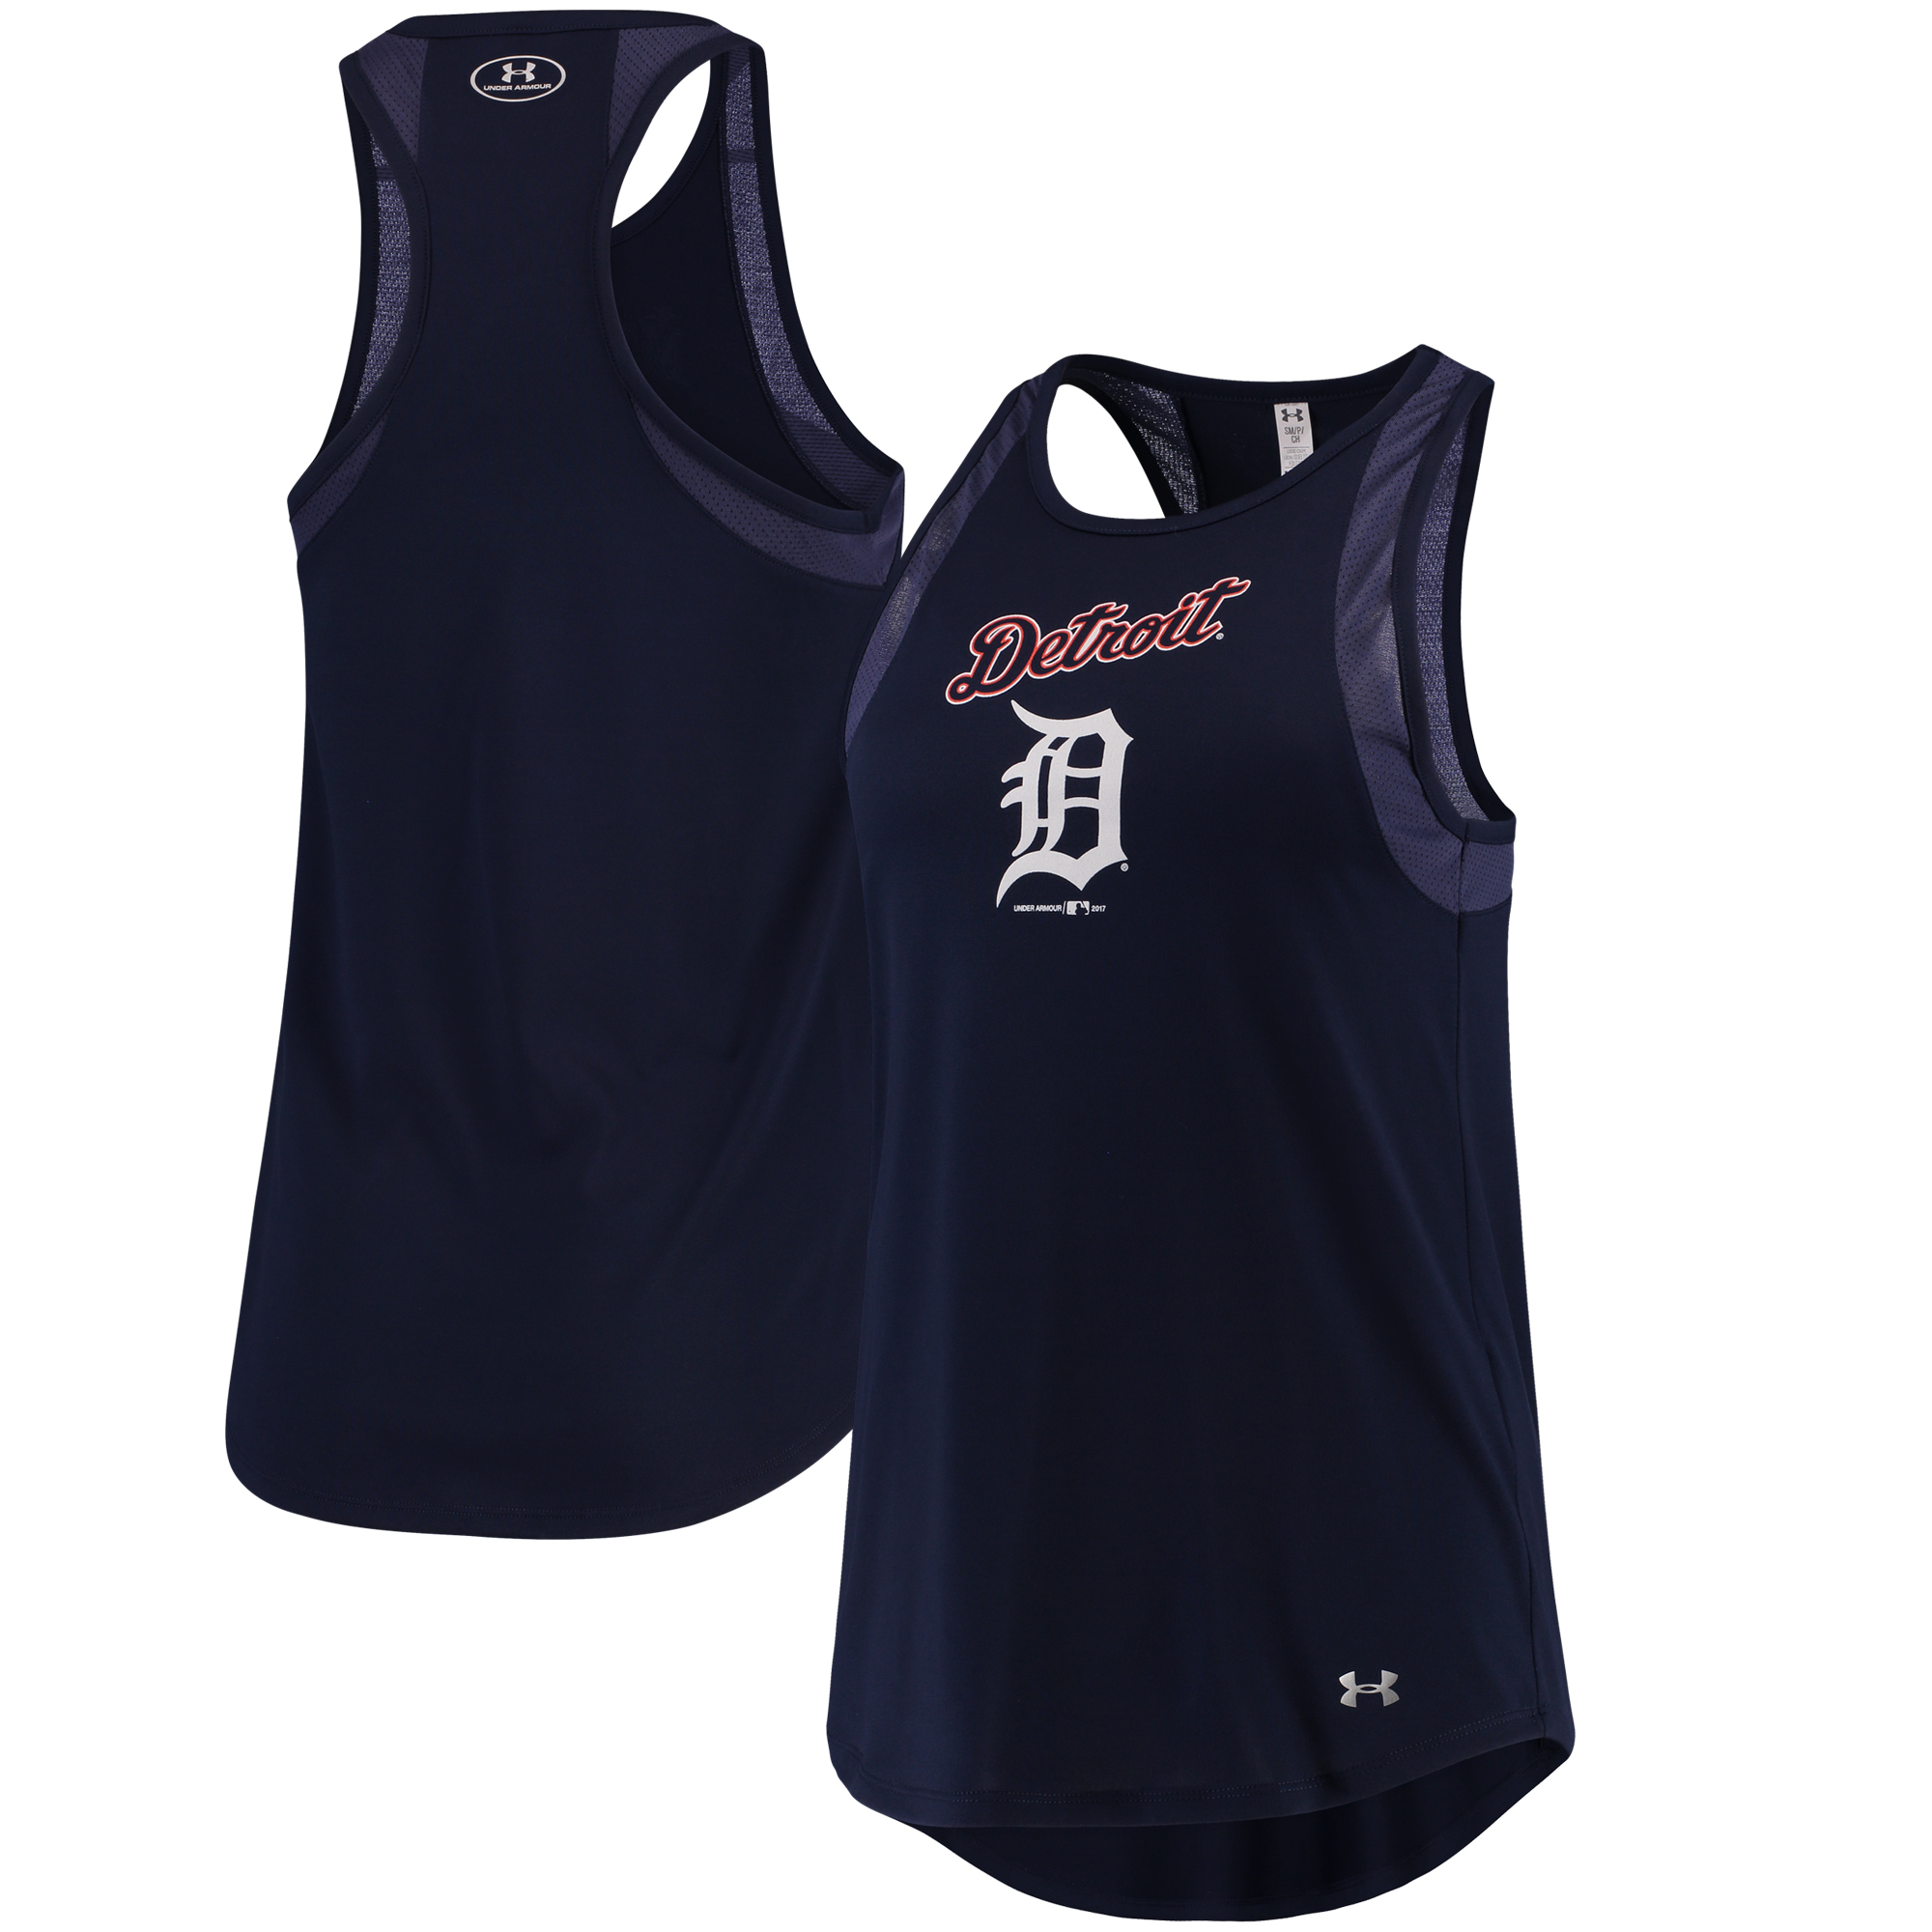 Detroit Tigers Under Armour Women's Pointelle Mesh Performance Tank Top Navy by Gear For Sports/Under Armour